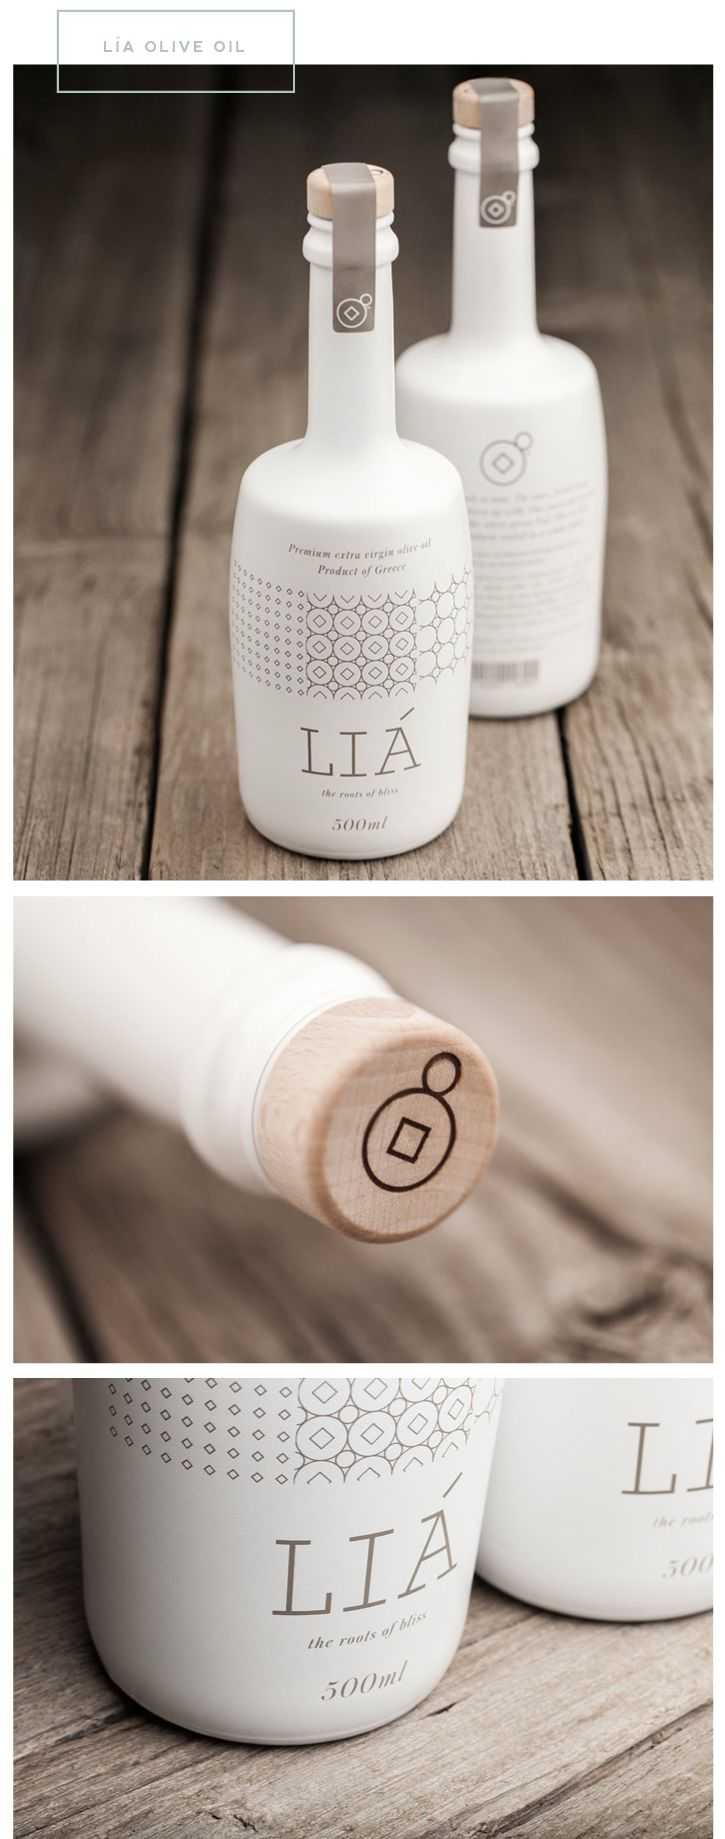 Brand and packaging design for LIA olive oil | Designed by Bob Studio | Country: Greece